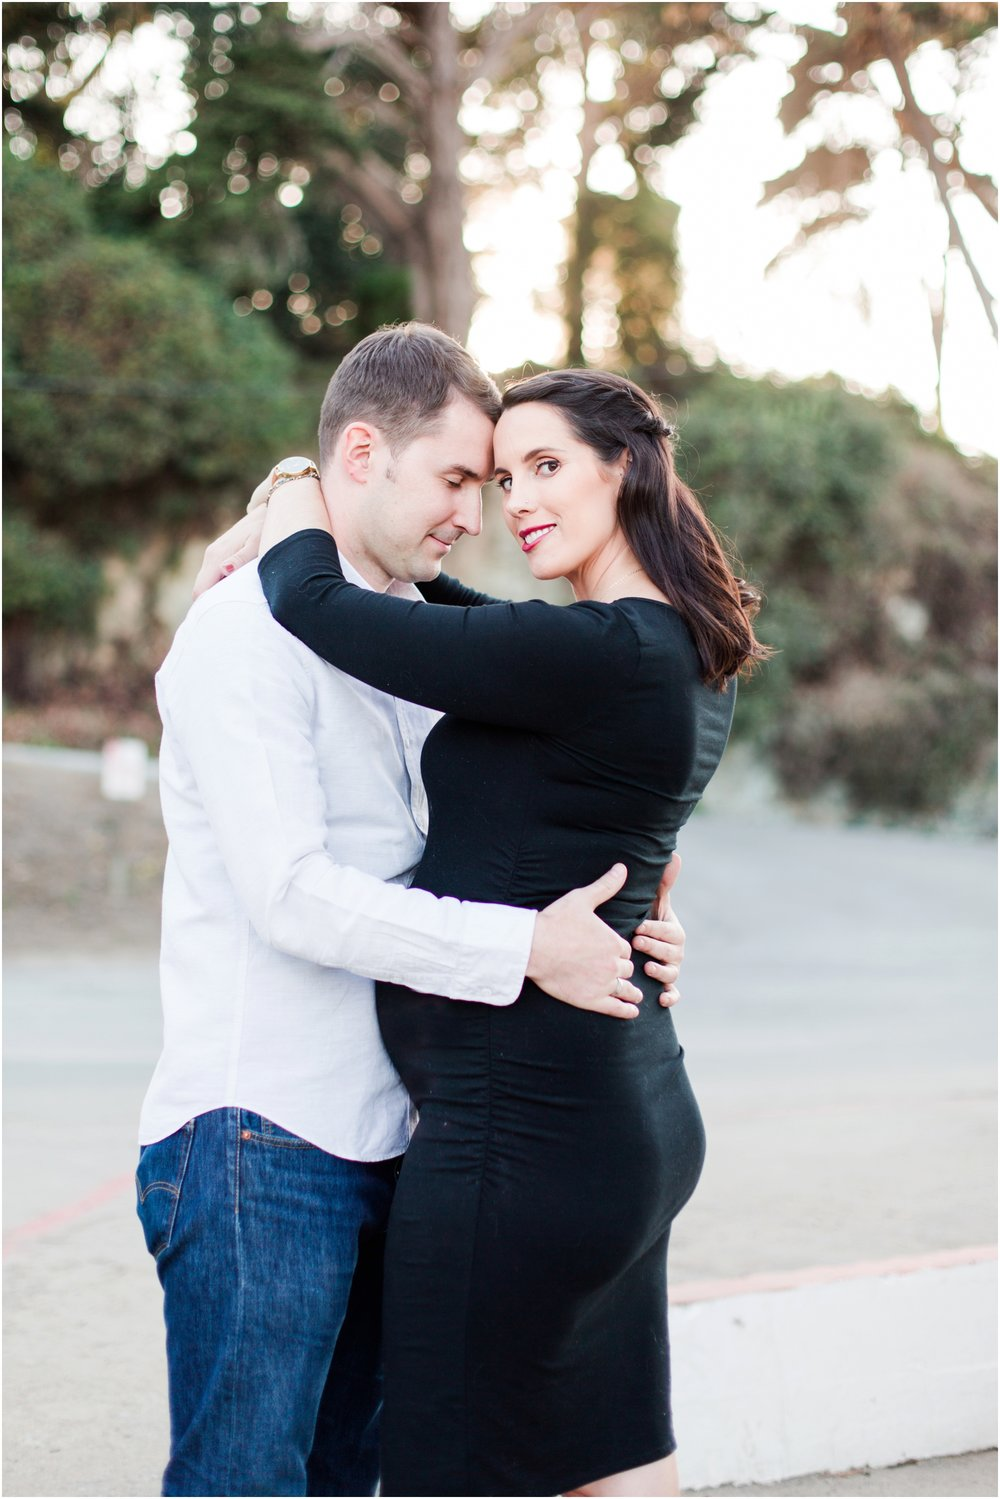 Crissy Field San Francisco maternity pictures by Briana Calderon Photography_0273.jpg